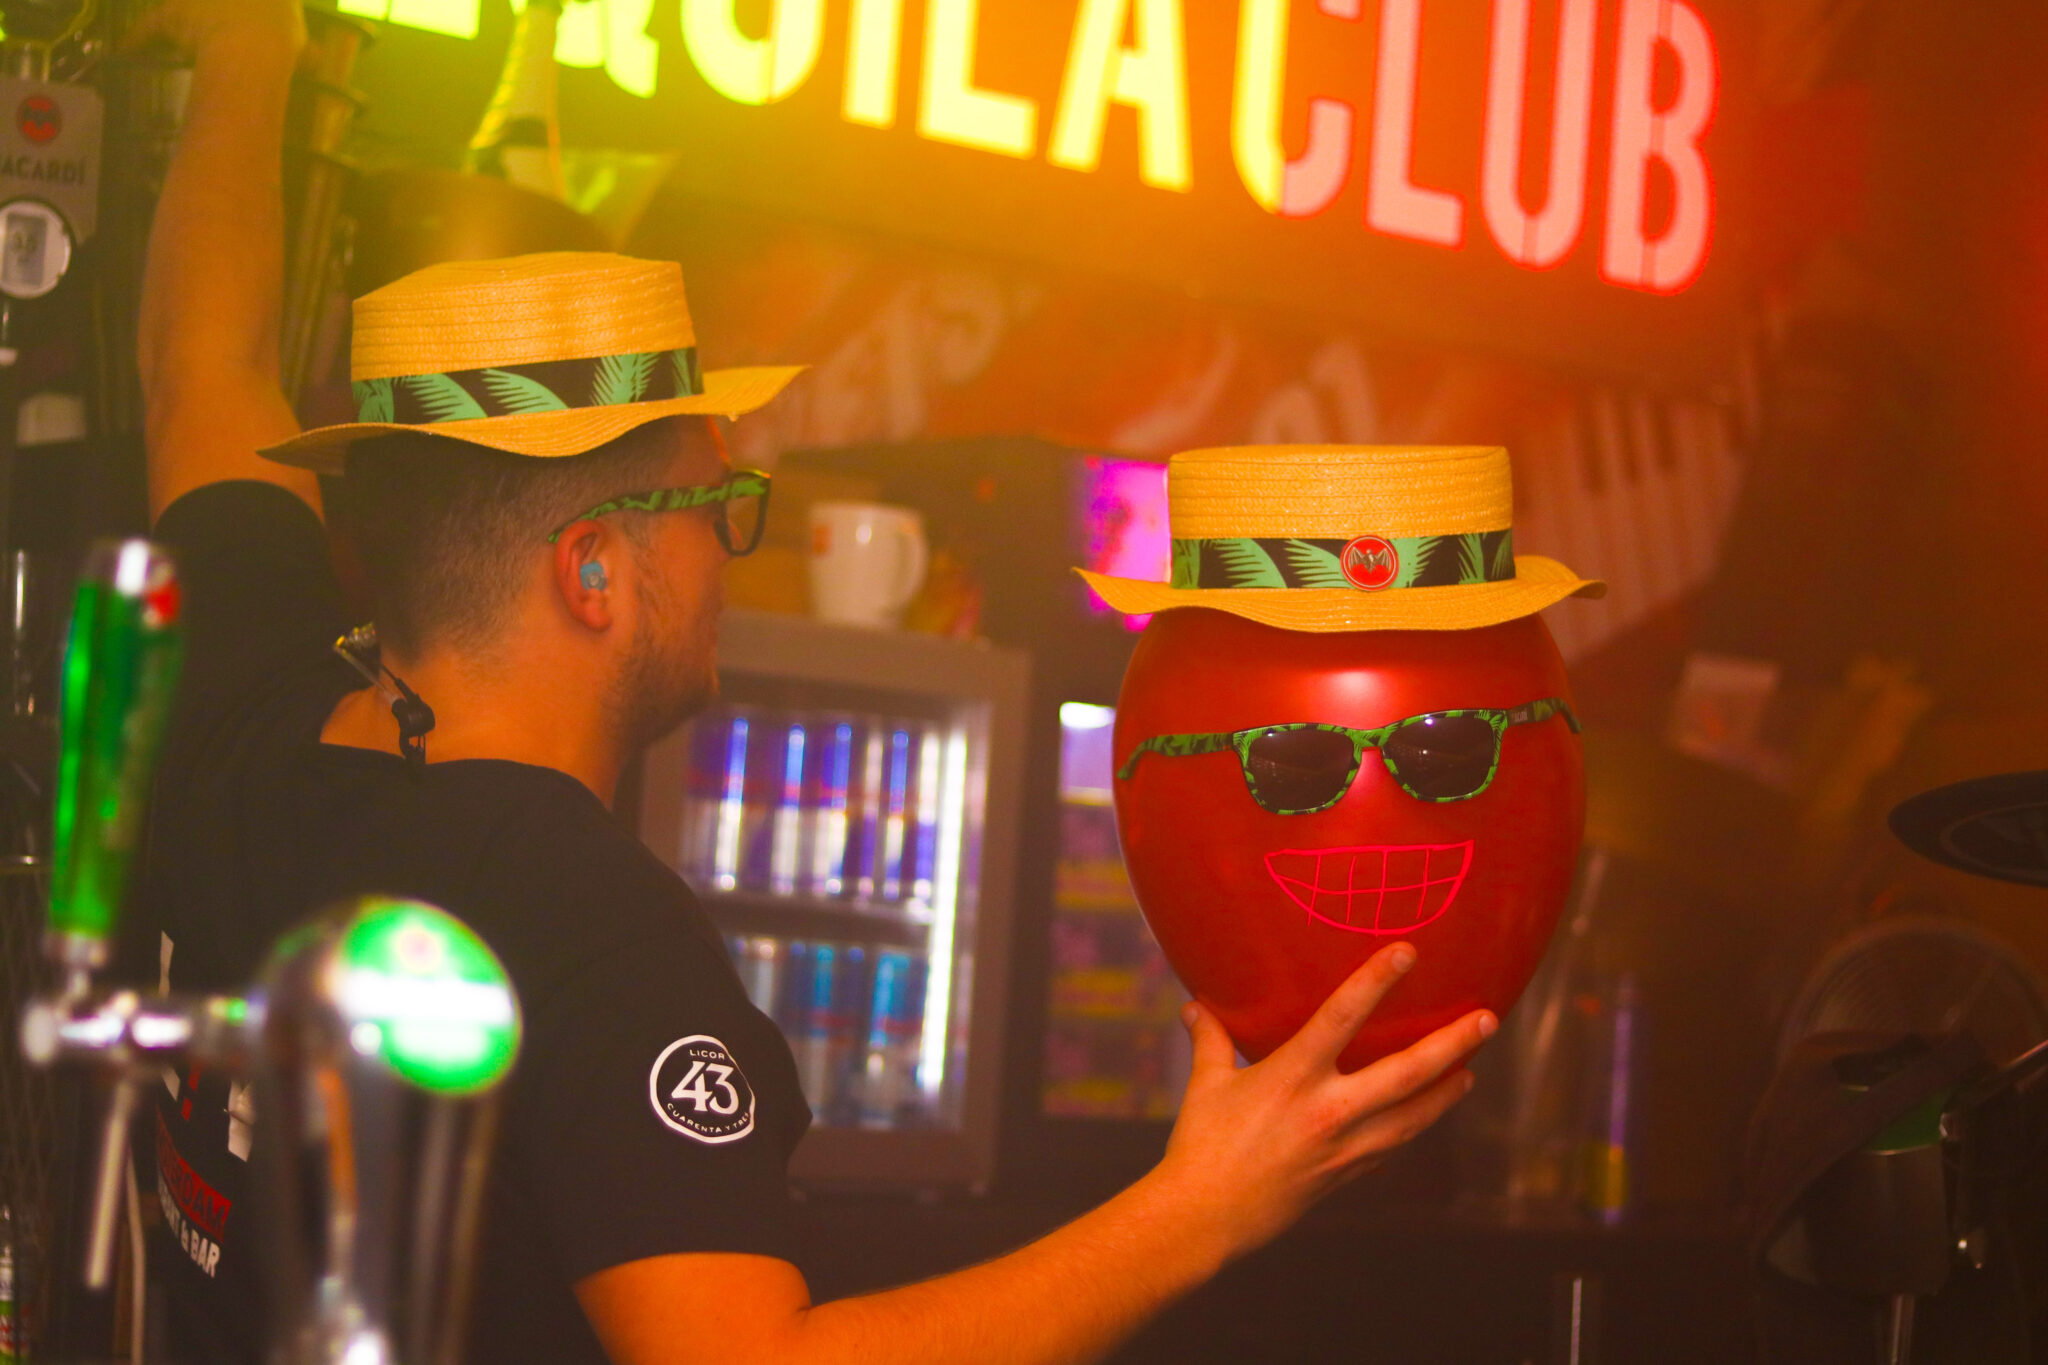 The tequillaclub | SHOOT